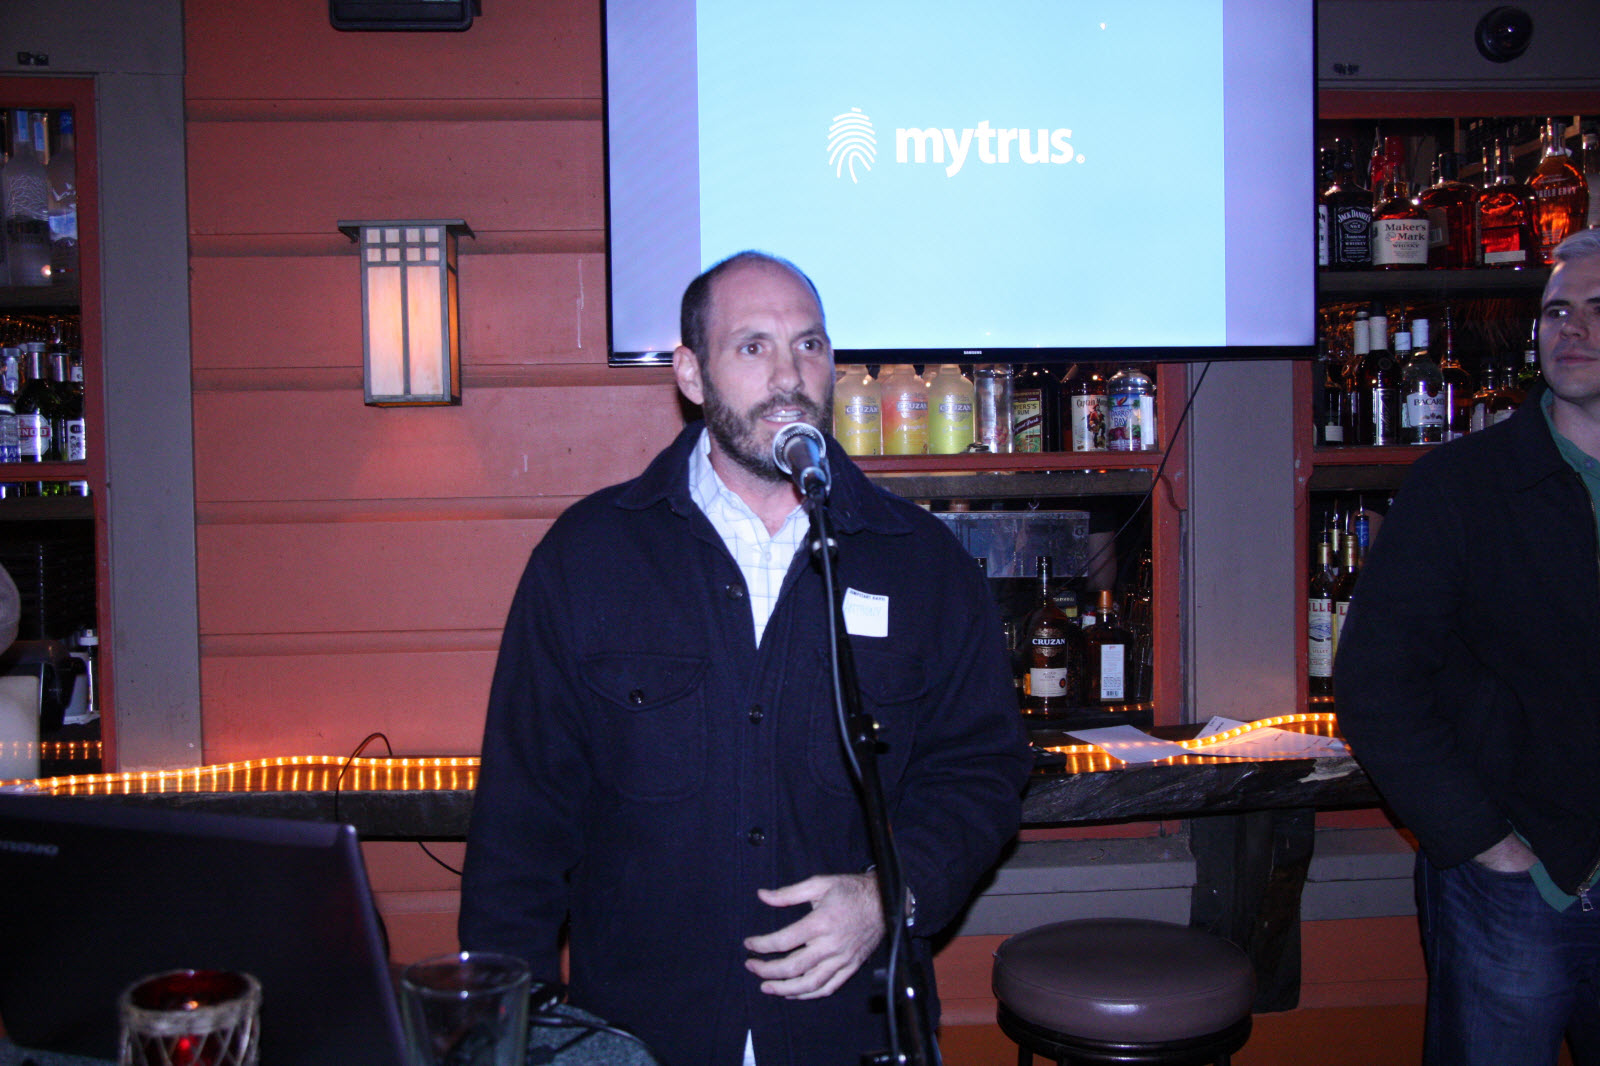 Anthony Costello presents on Mytrus